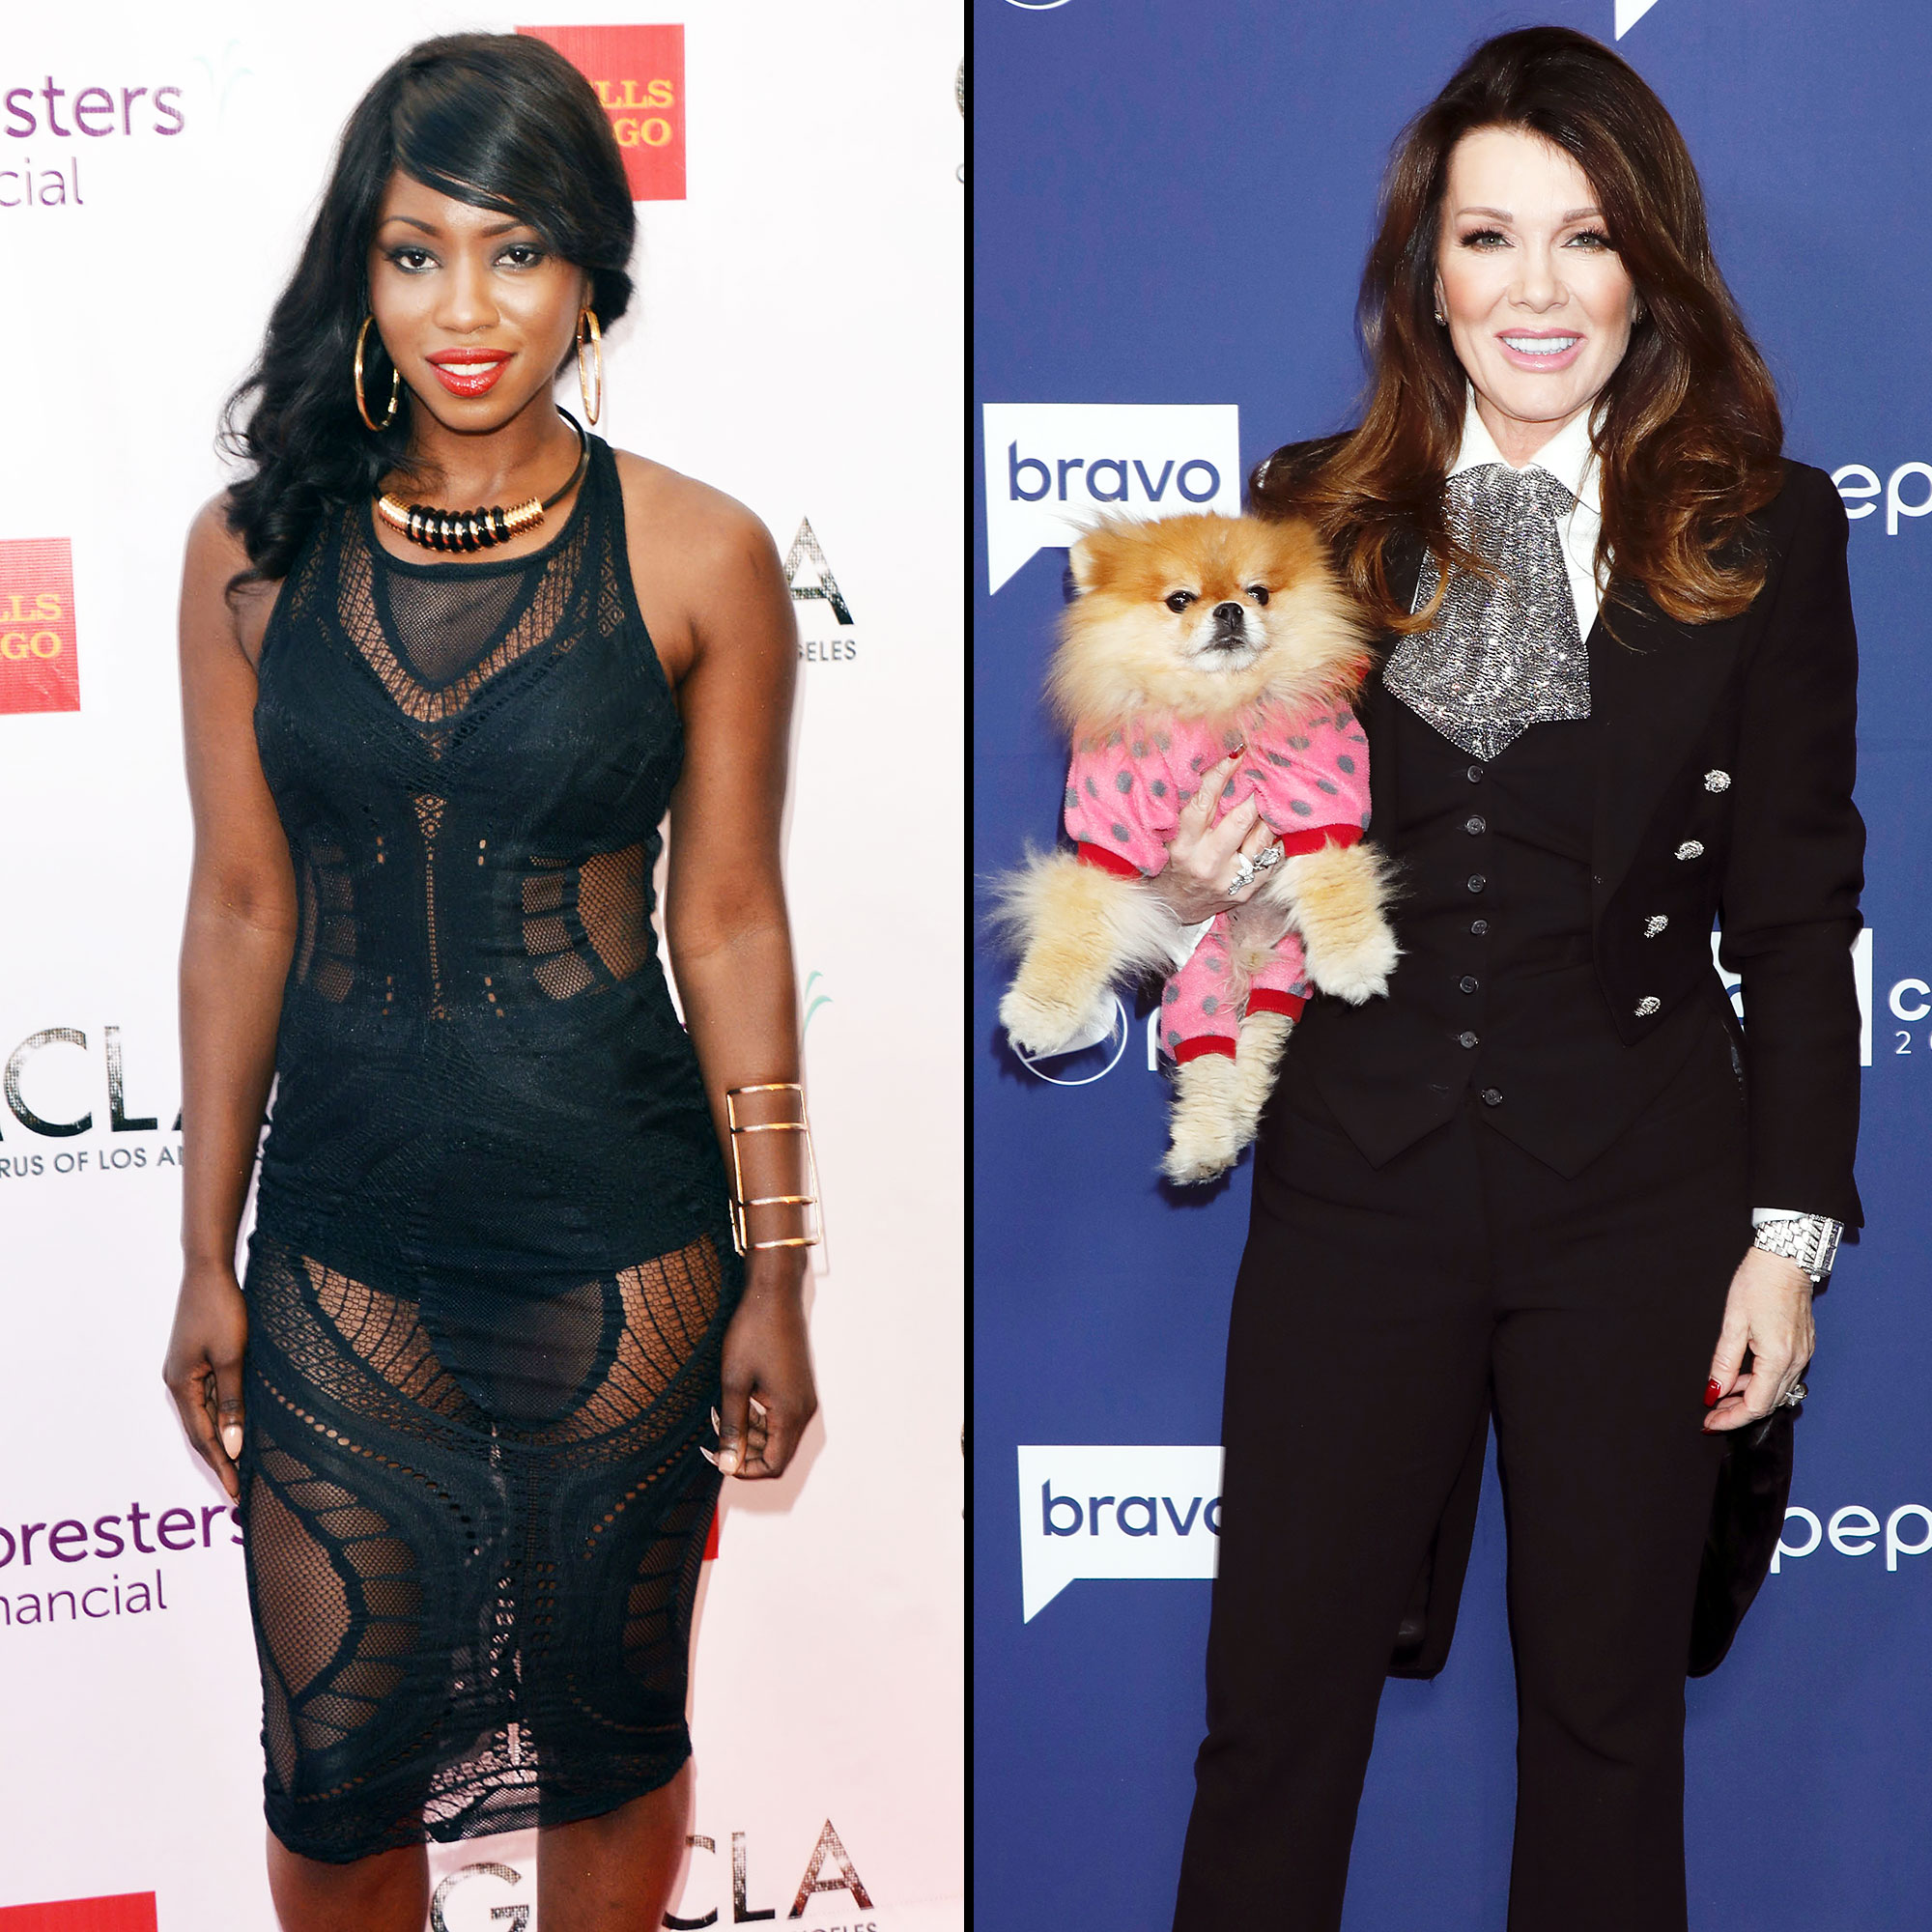 Faith Stowers Says Lisa Vanderpump Only Marches for Dogs and Not Humans